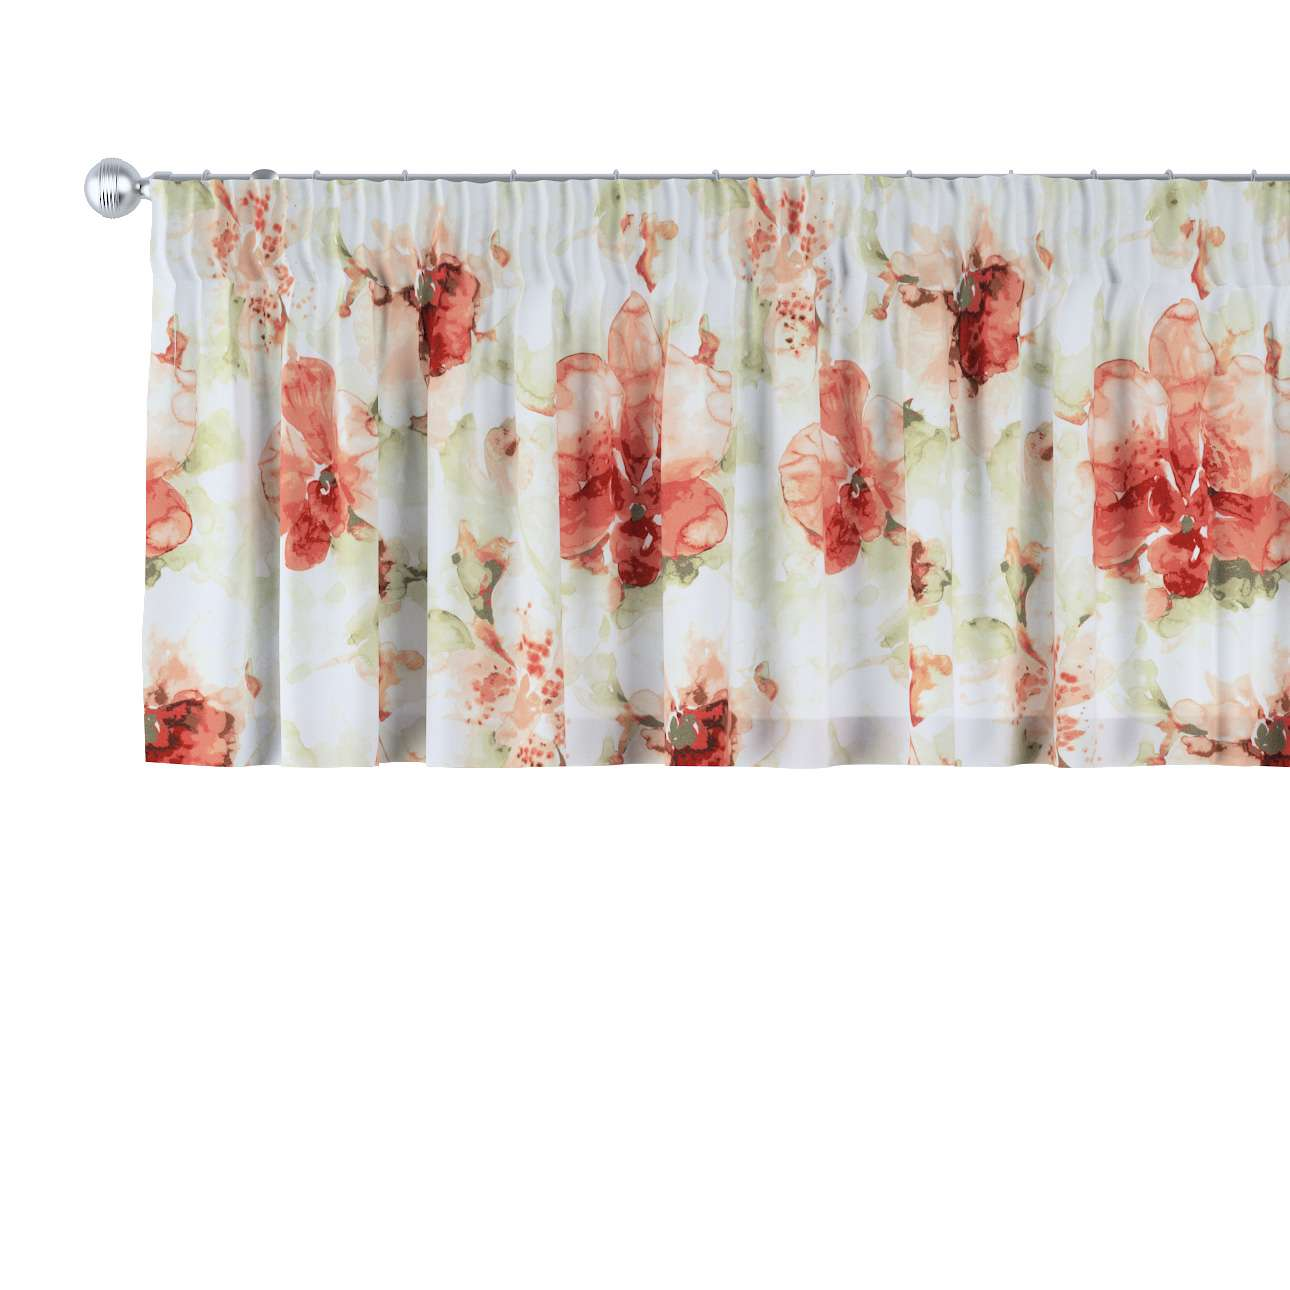 Pencil pleat pelmet in collection Acapulco, fabric: 141-34